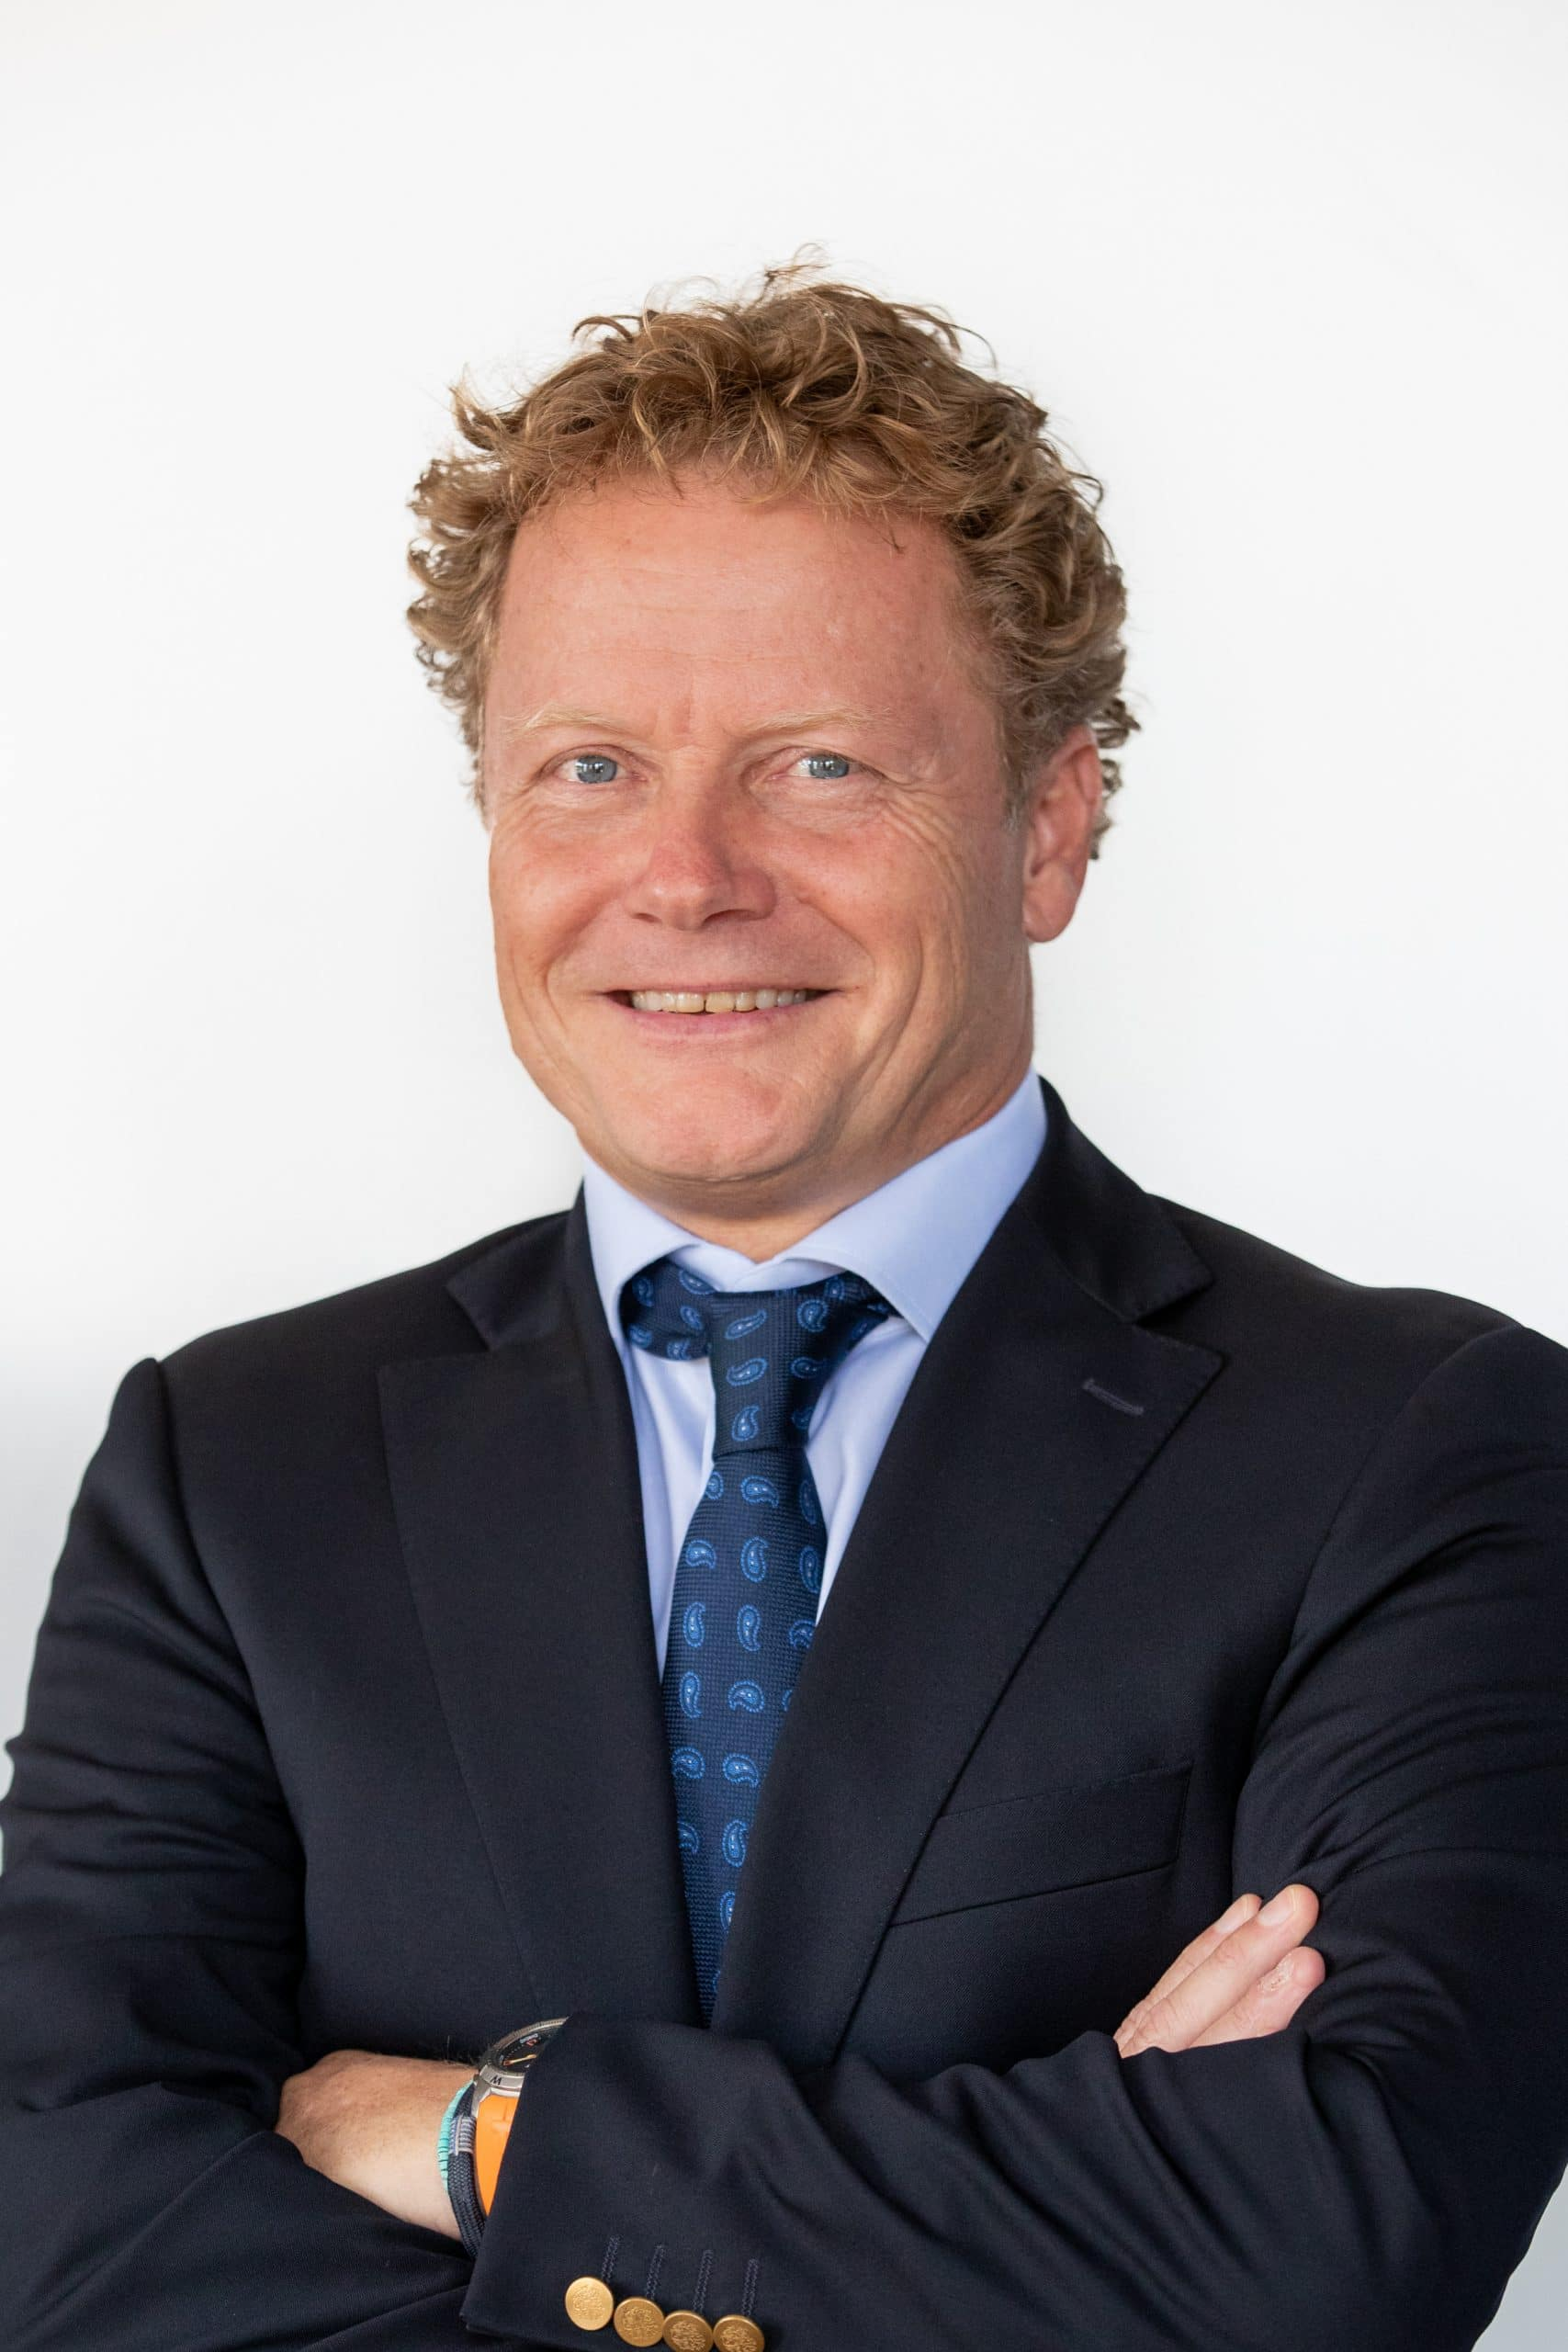 Mr. Marcel Stappers joins MTBS as Senior Manager Commerce